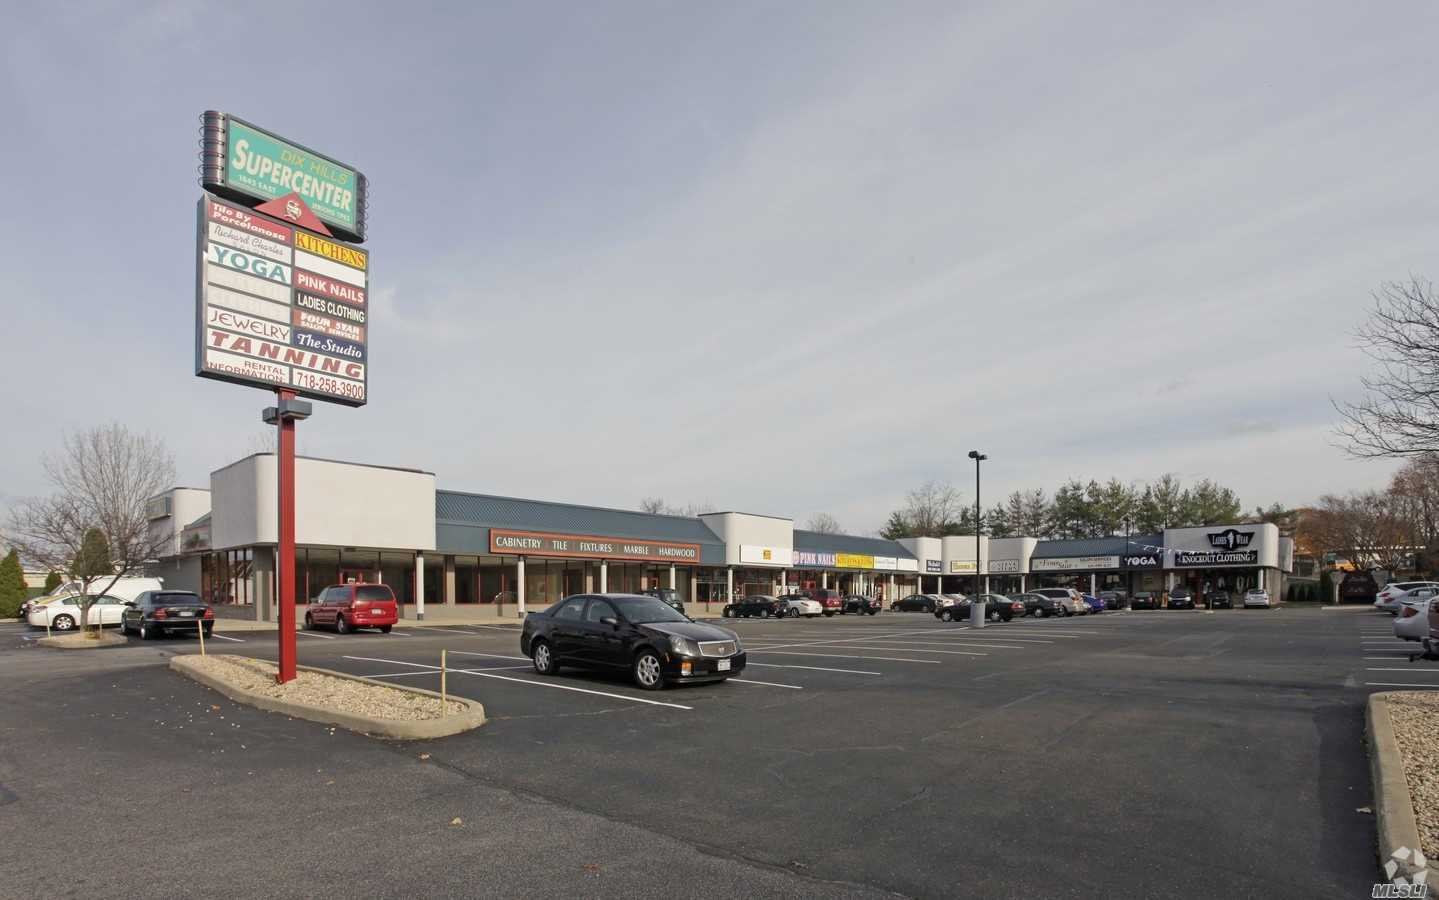 Retail Storefronts Available For Lease On Heavily Traveled Jericho Tpke. In Huntington. Extremely High Traffic Counts And Excellent Demographics In A Busy Strip. Landlord Will Consider Build Out For The Right Tenant. Perfect Location For A Food Vendor, Doctor Or Any Retail/Office Use!